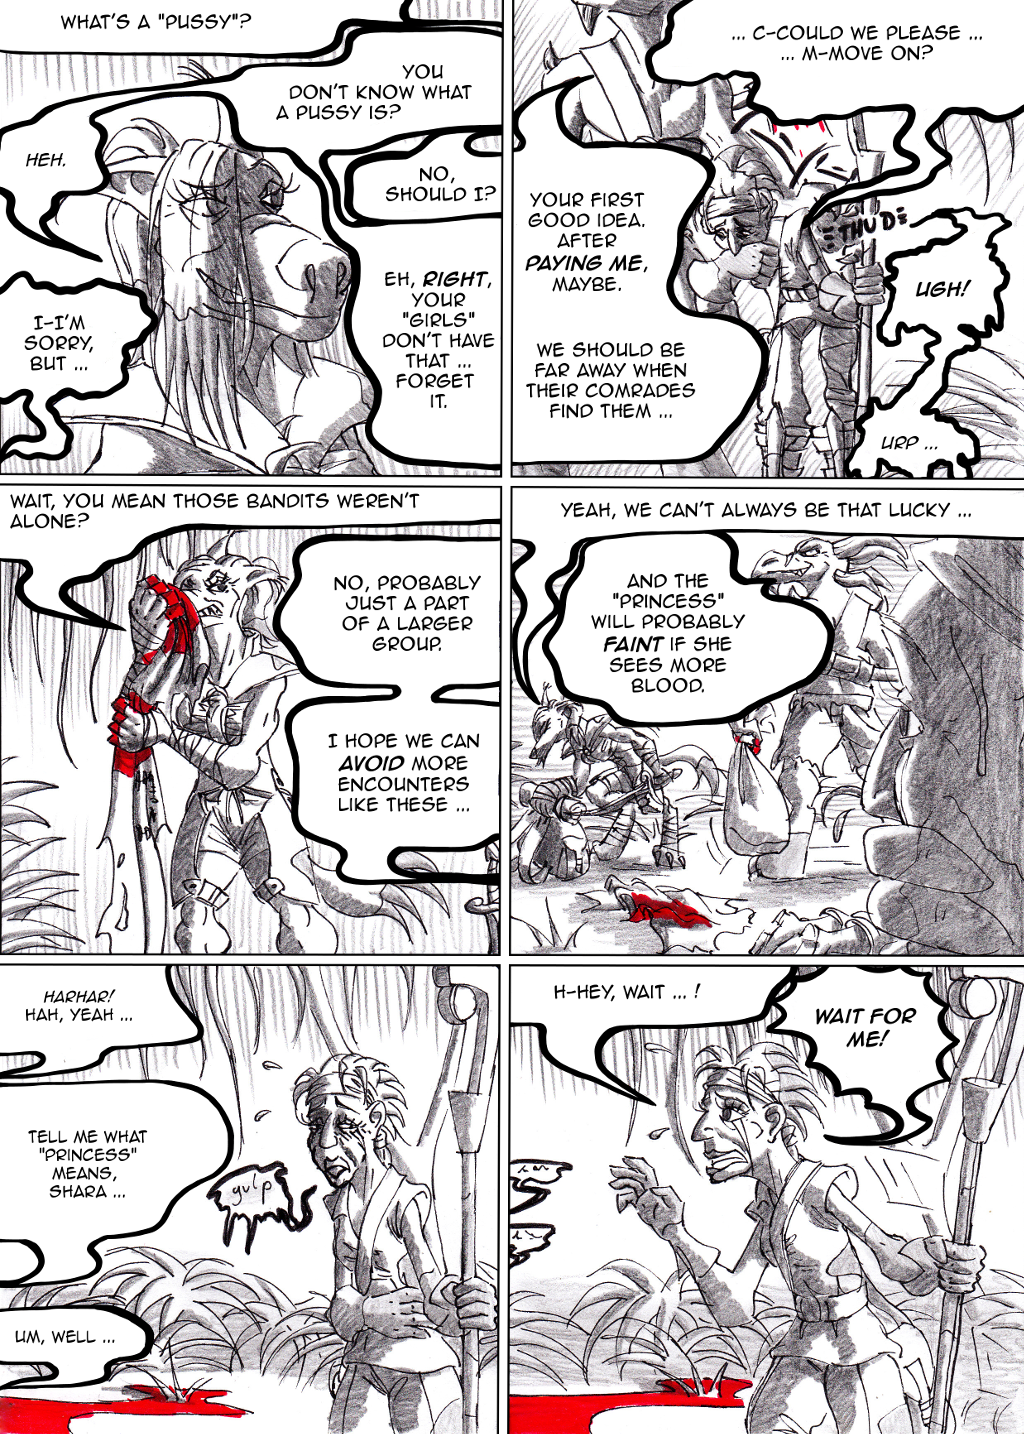 It wasn't really on purpose, but I guess Kshar tried to get the gender article right in panel 4 ...